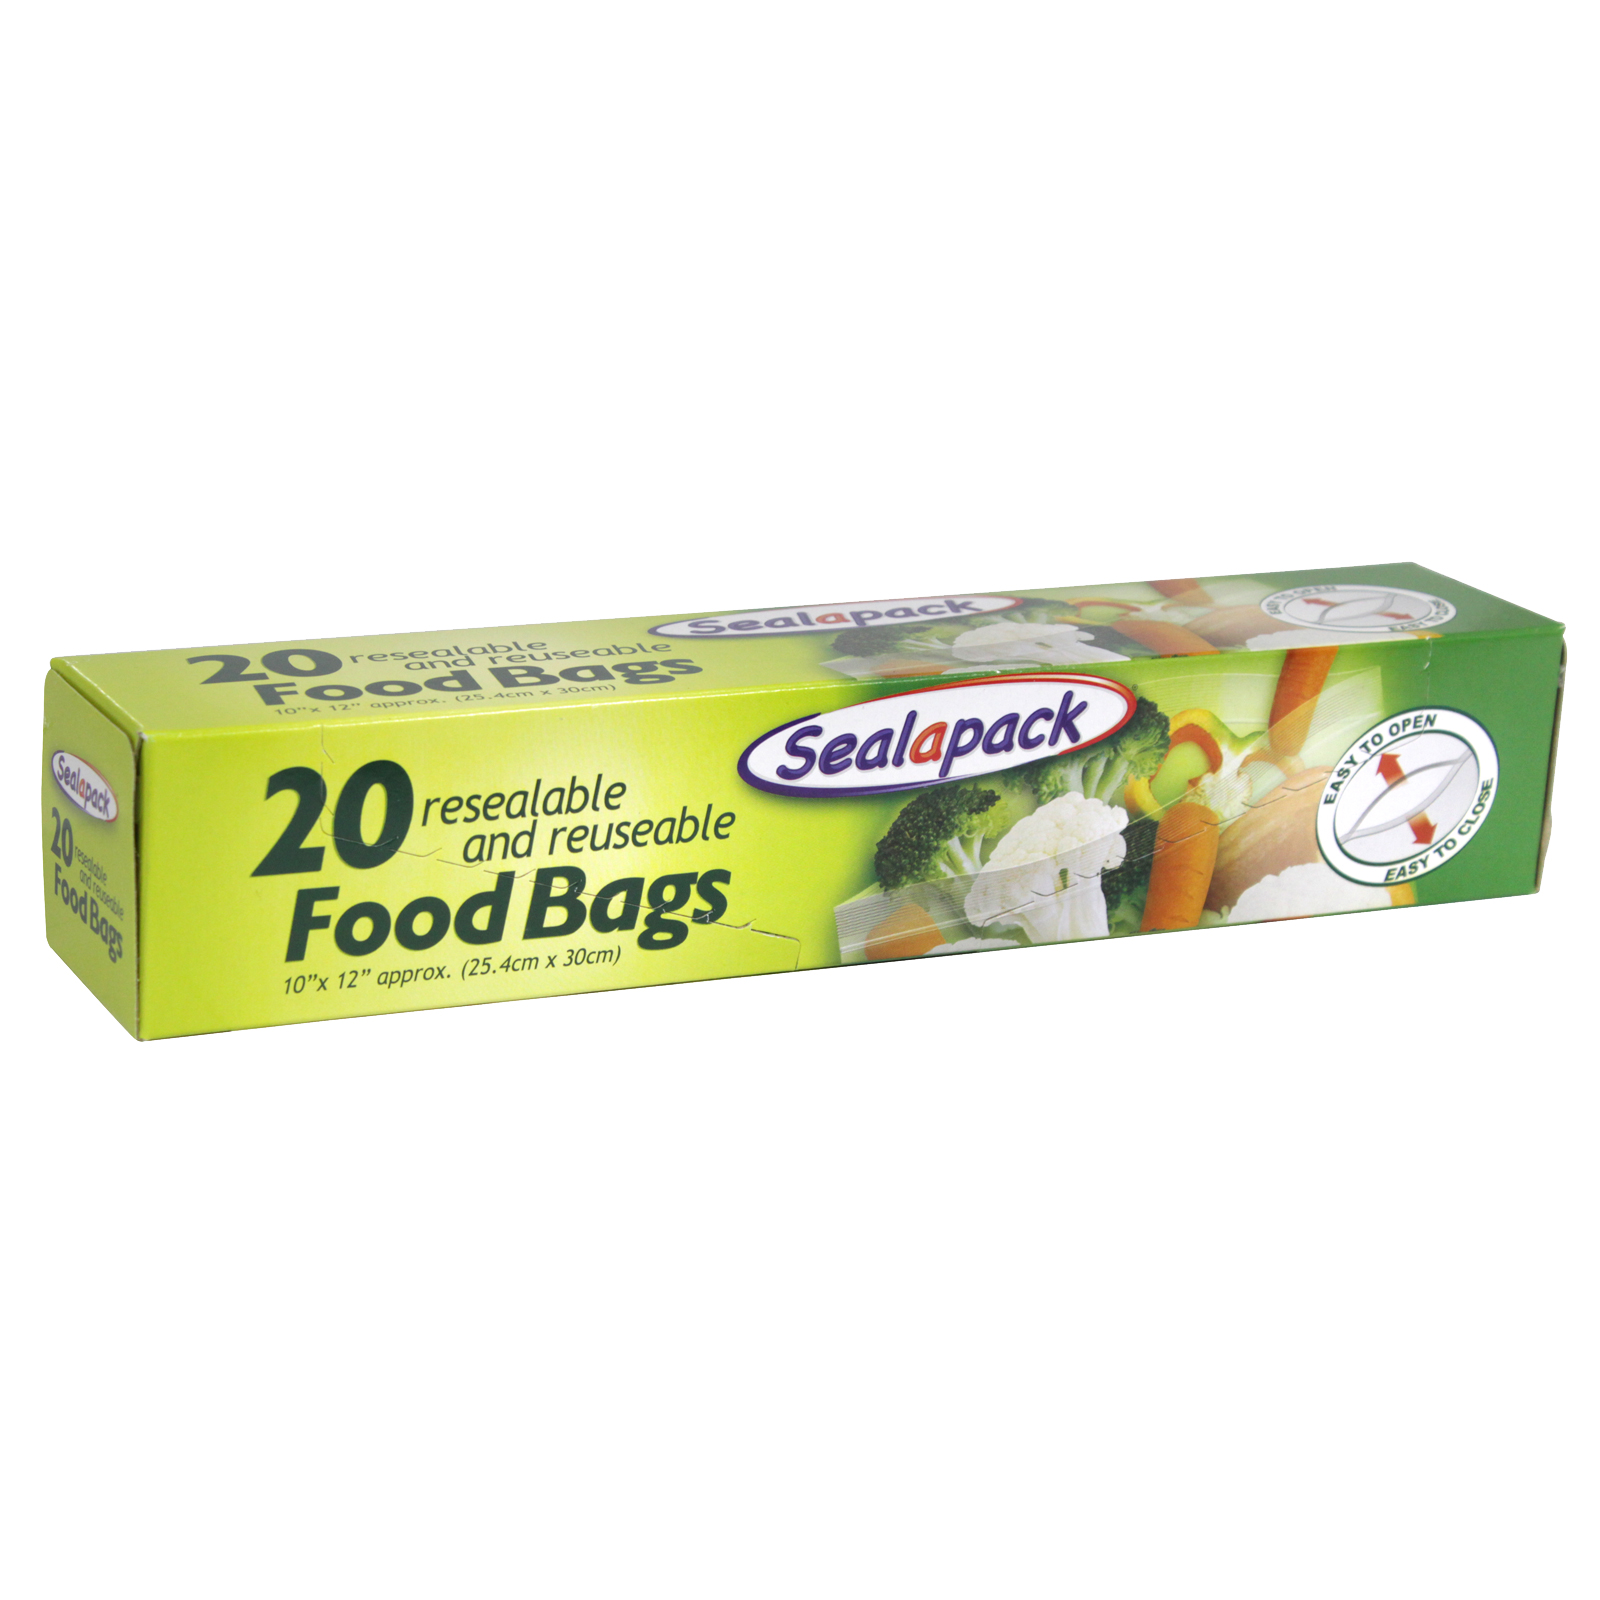 SEALAPACK RESEALABLE AND REUSEABLE FOOD BAGS 25.4CMX30CM